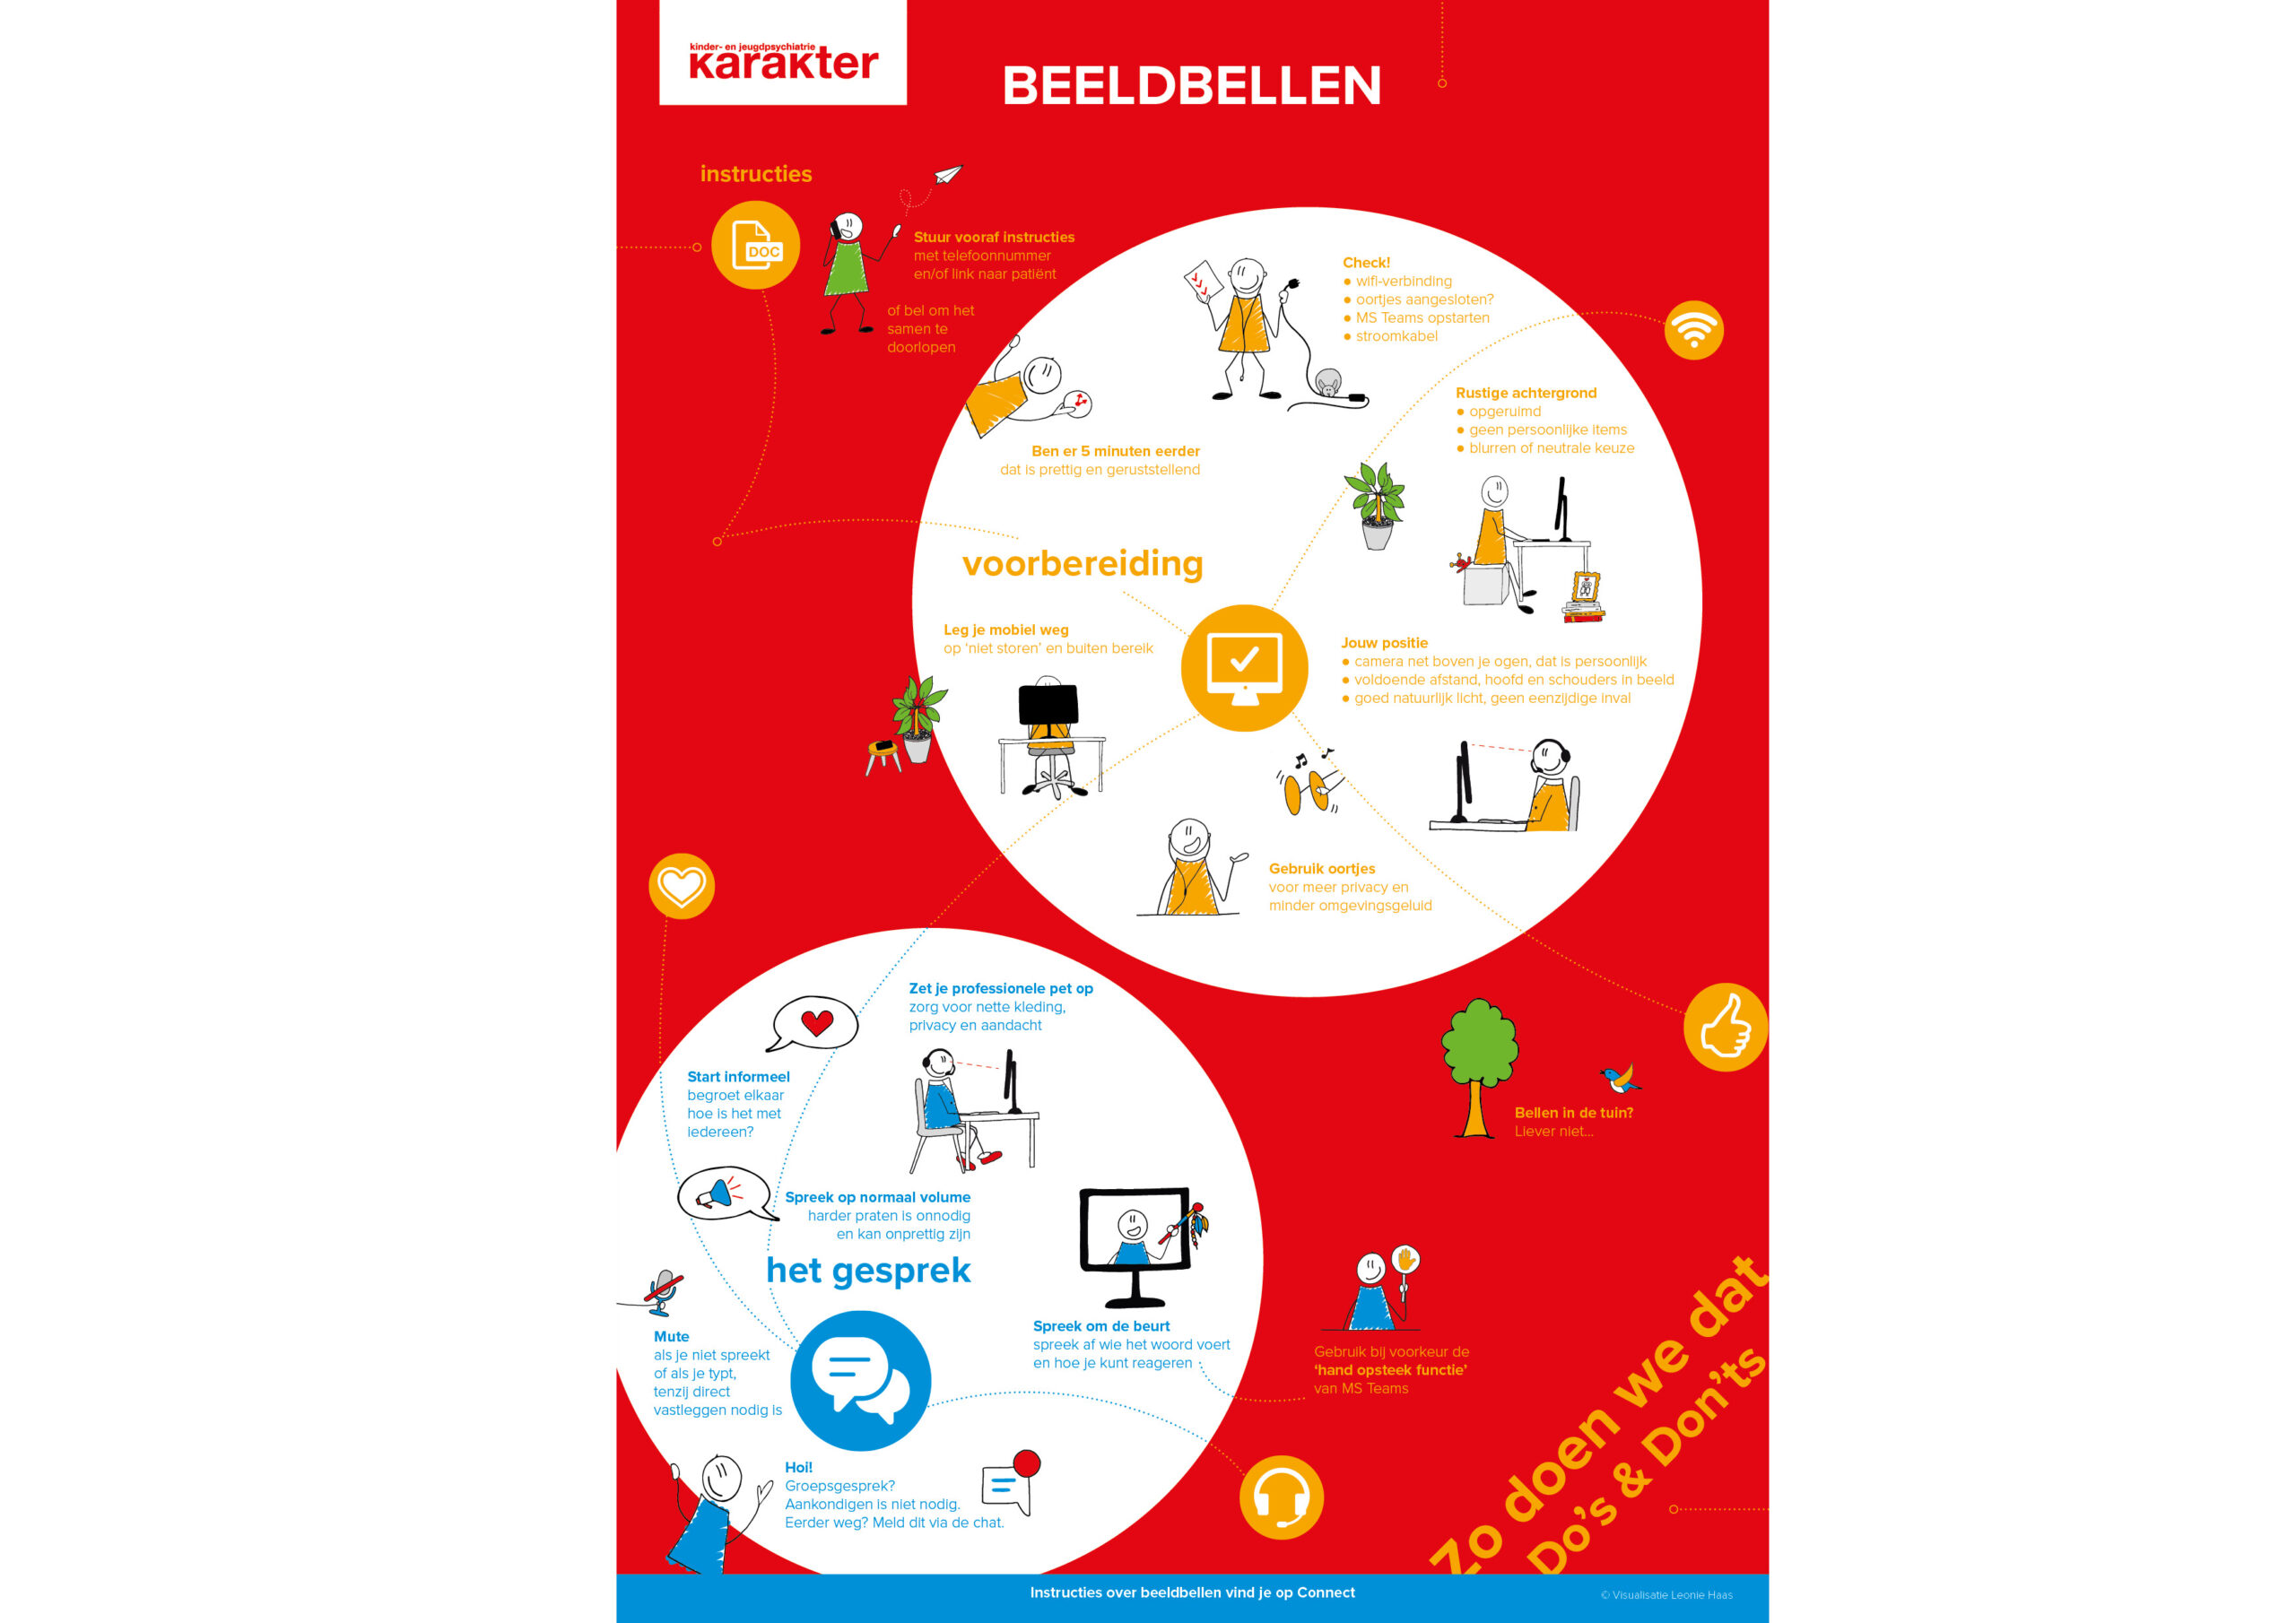 Beeldbellen instructie poster Karakter